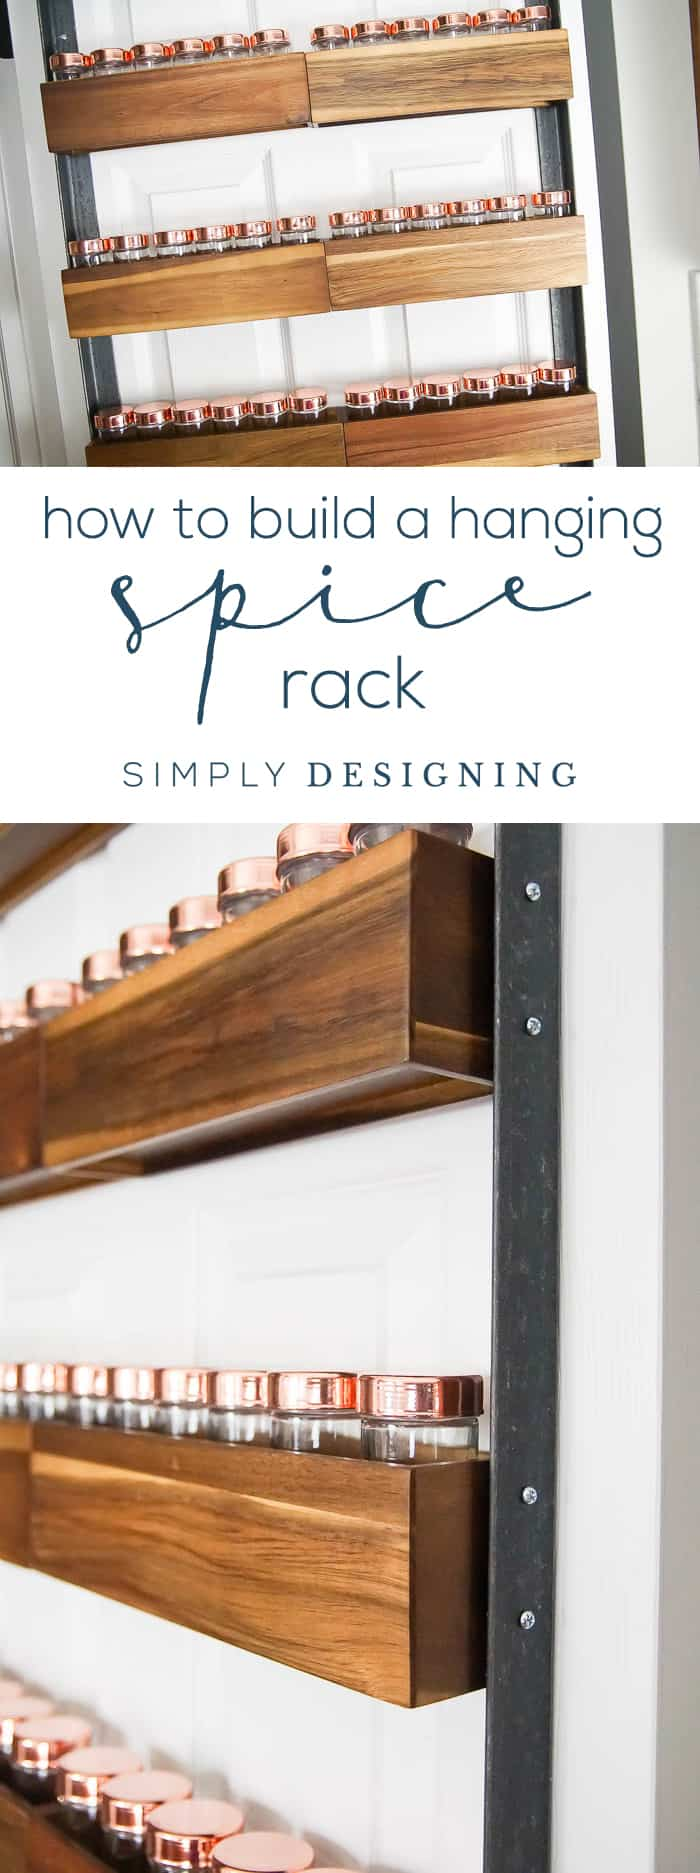 How to Build a DIY Spice Rack - a fun industrial hack to turn pretty wood spice racks into a hanging spice rack perfect for the back of your pantry door